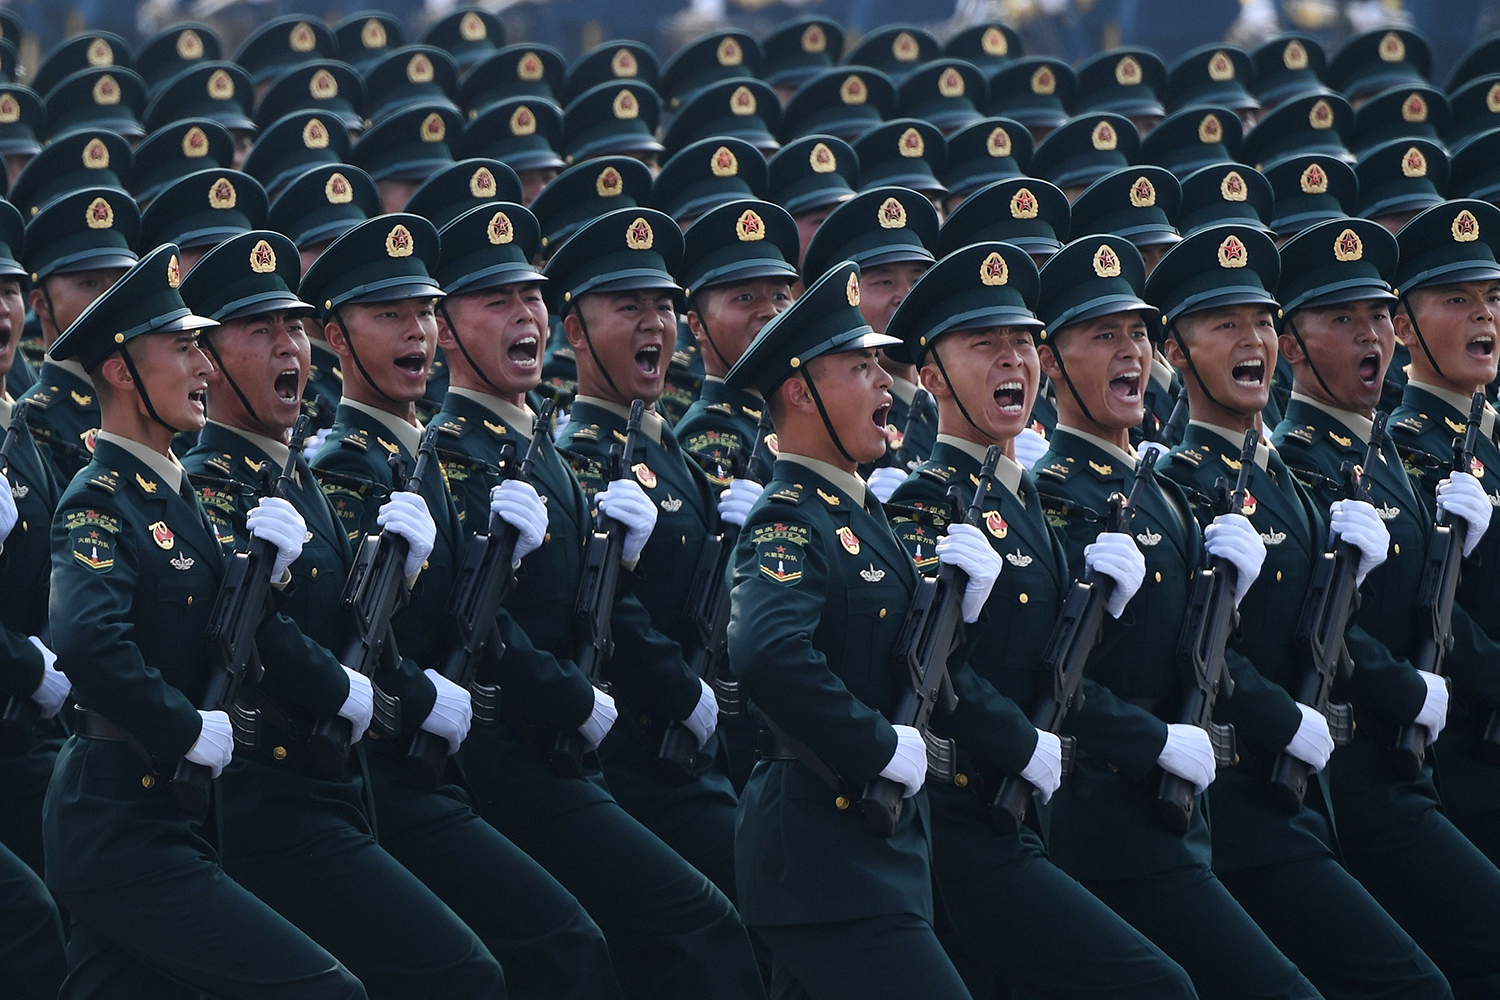 Chinese troops march during a military parade in Tiananmen Square in Beijing to mark the 70th anniversary of the founding of the People's Republic of China on Oct. 1. GREG BAKER/AFP/Getty Images